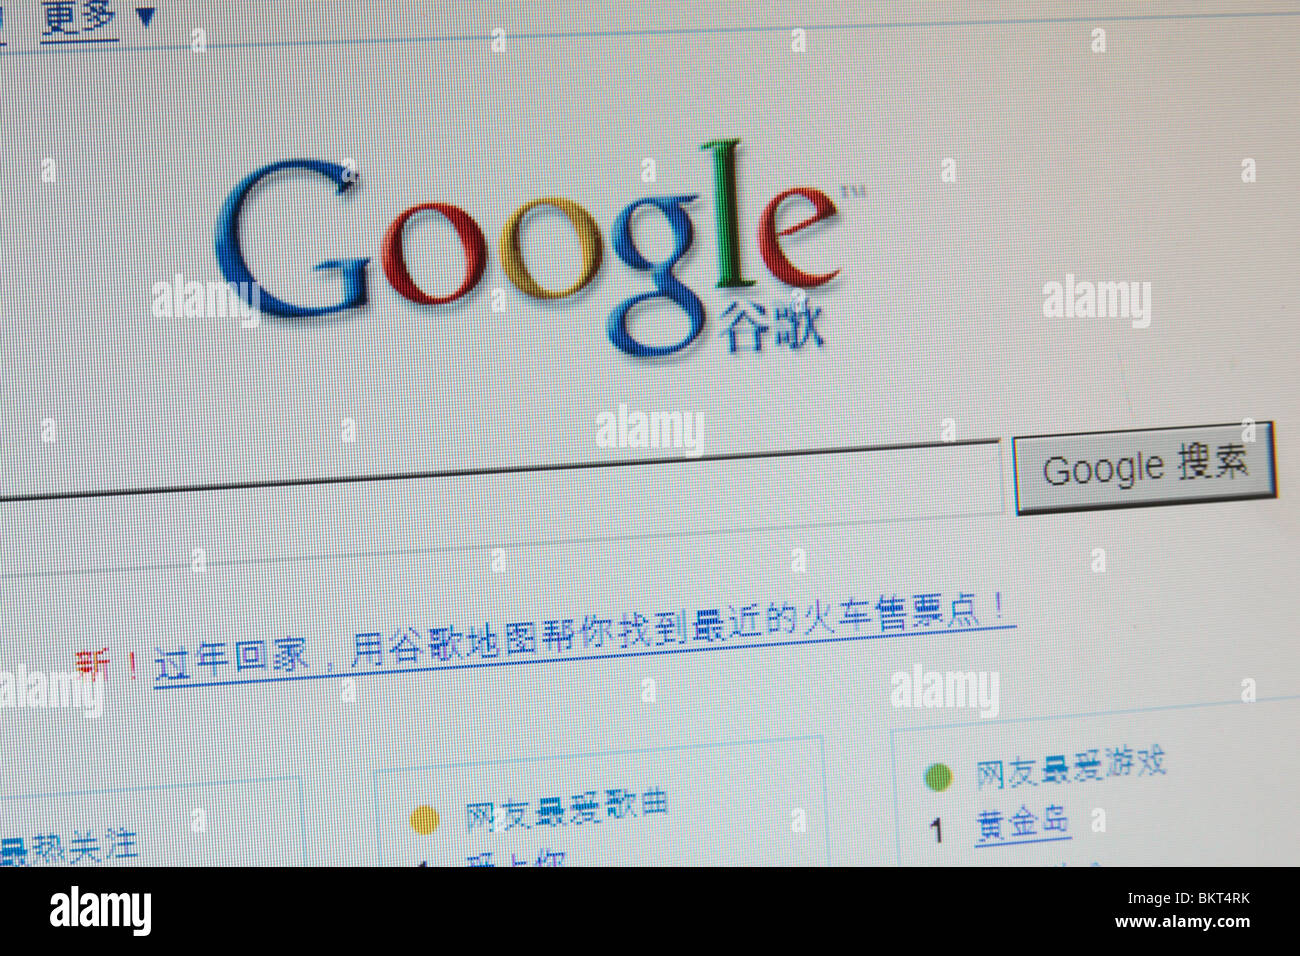 A screen shot of the main search page for the Chinese Google search engine. April 2010 - Stock Image